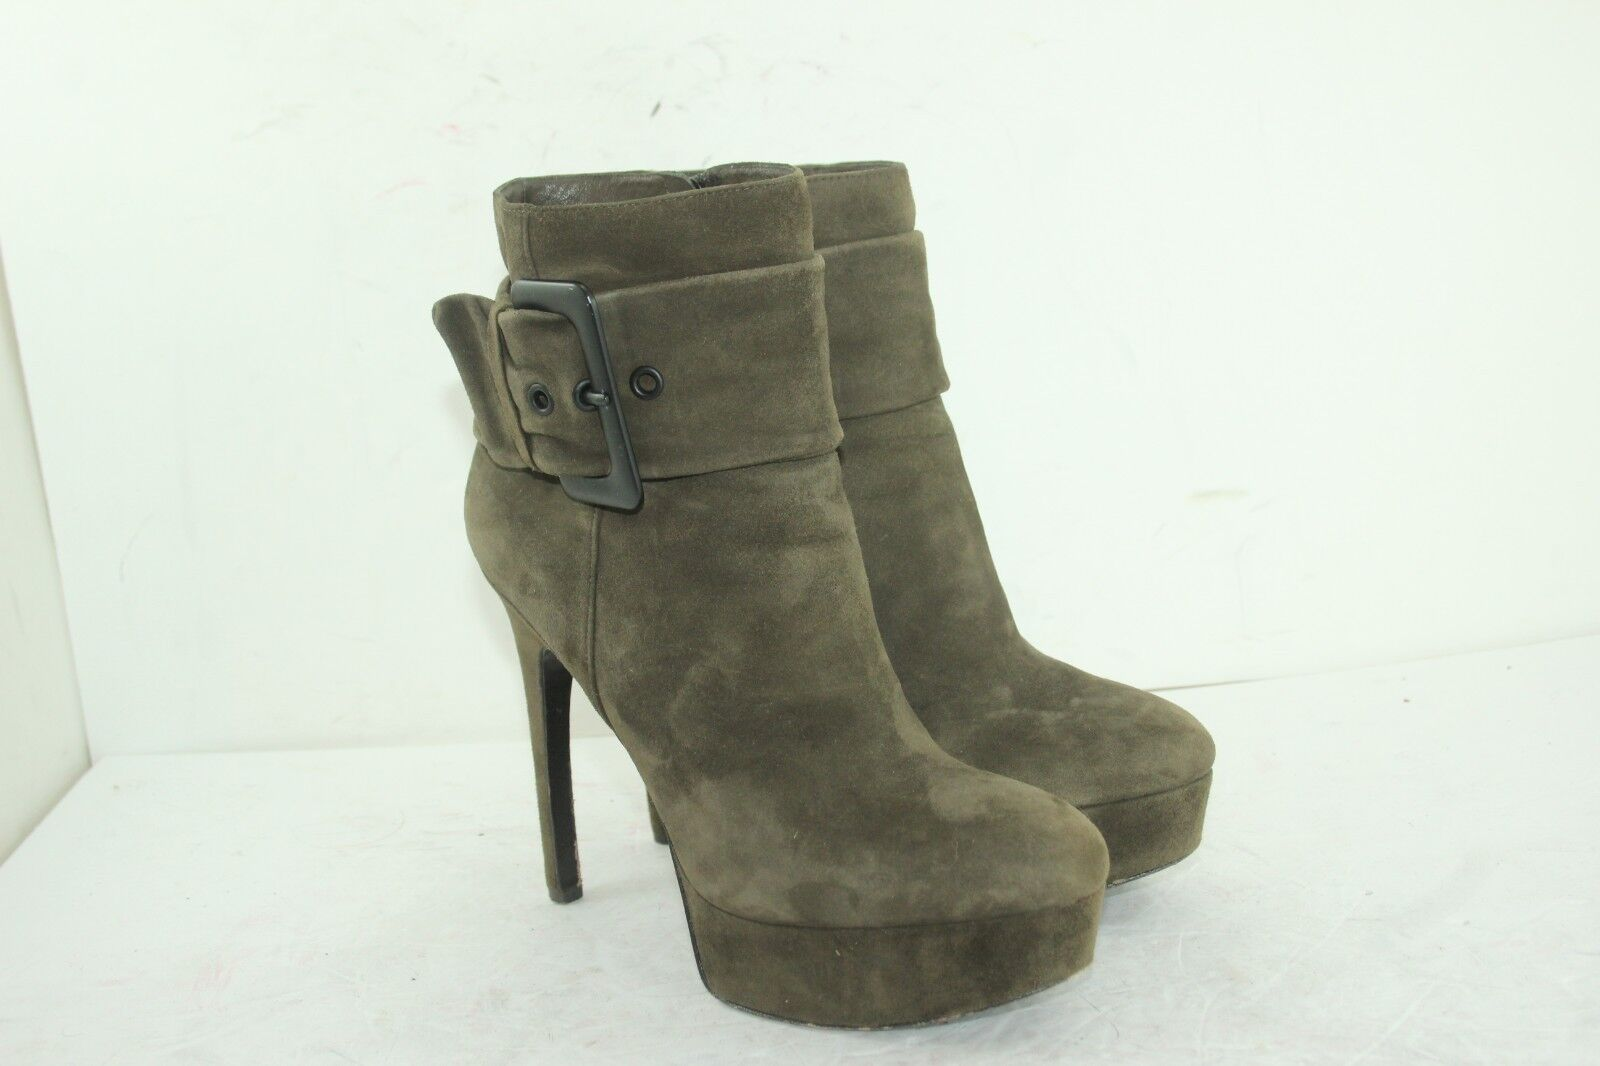 VIA SPIGA BOOTIES SZ 8 LEATHER SUEDE GREEN IN GREAT CONDITION